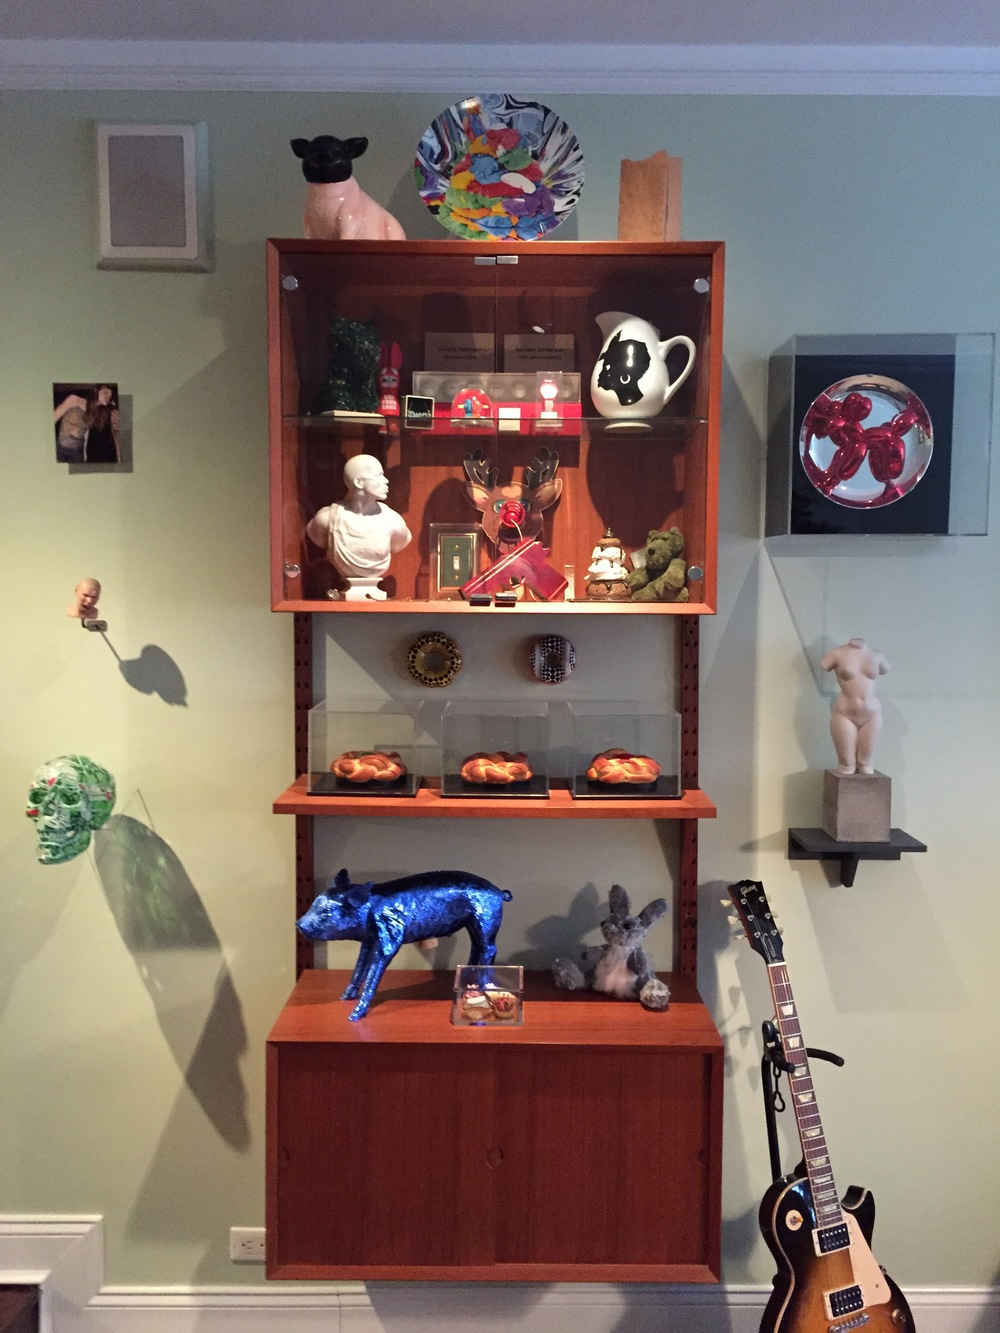 Michael Lyons Wier's contemporary art objects display (view 1)